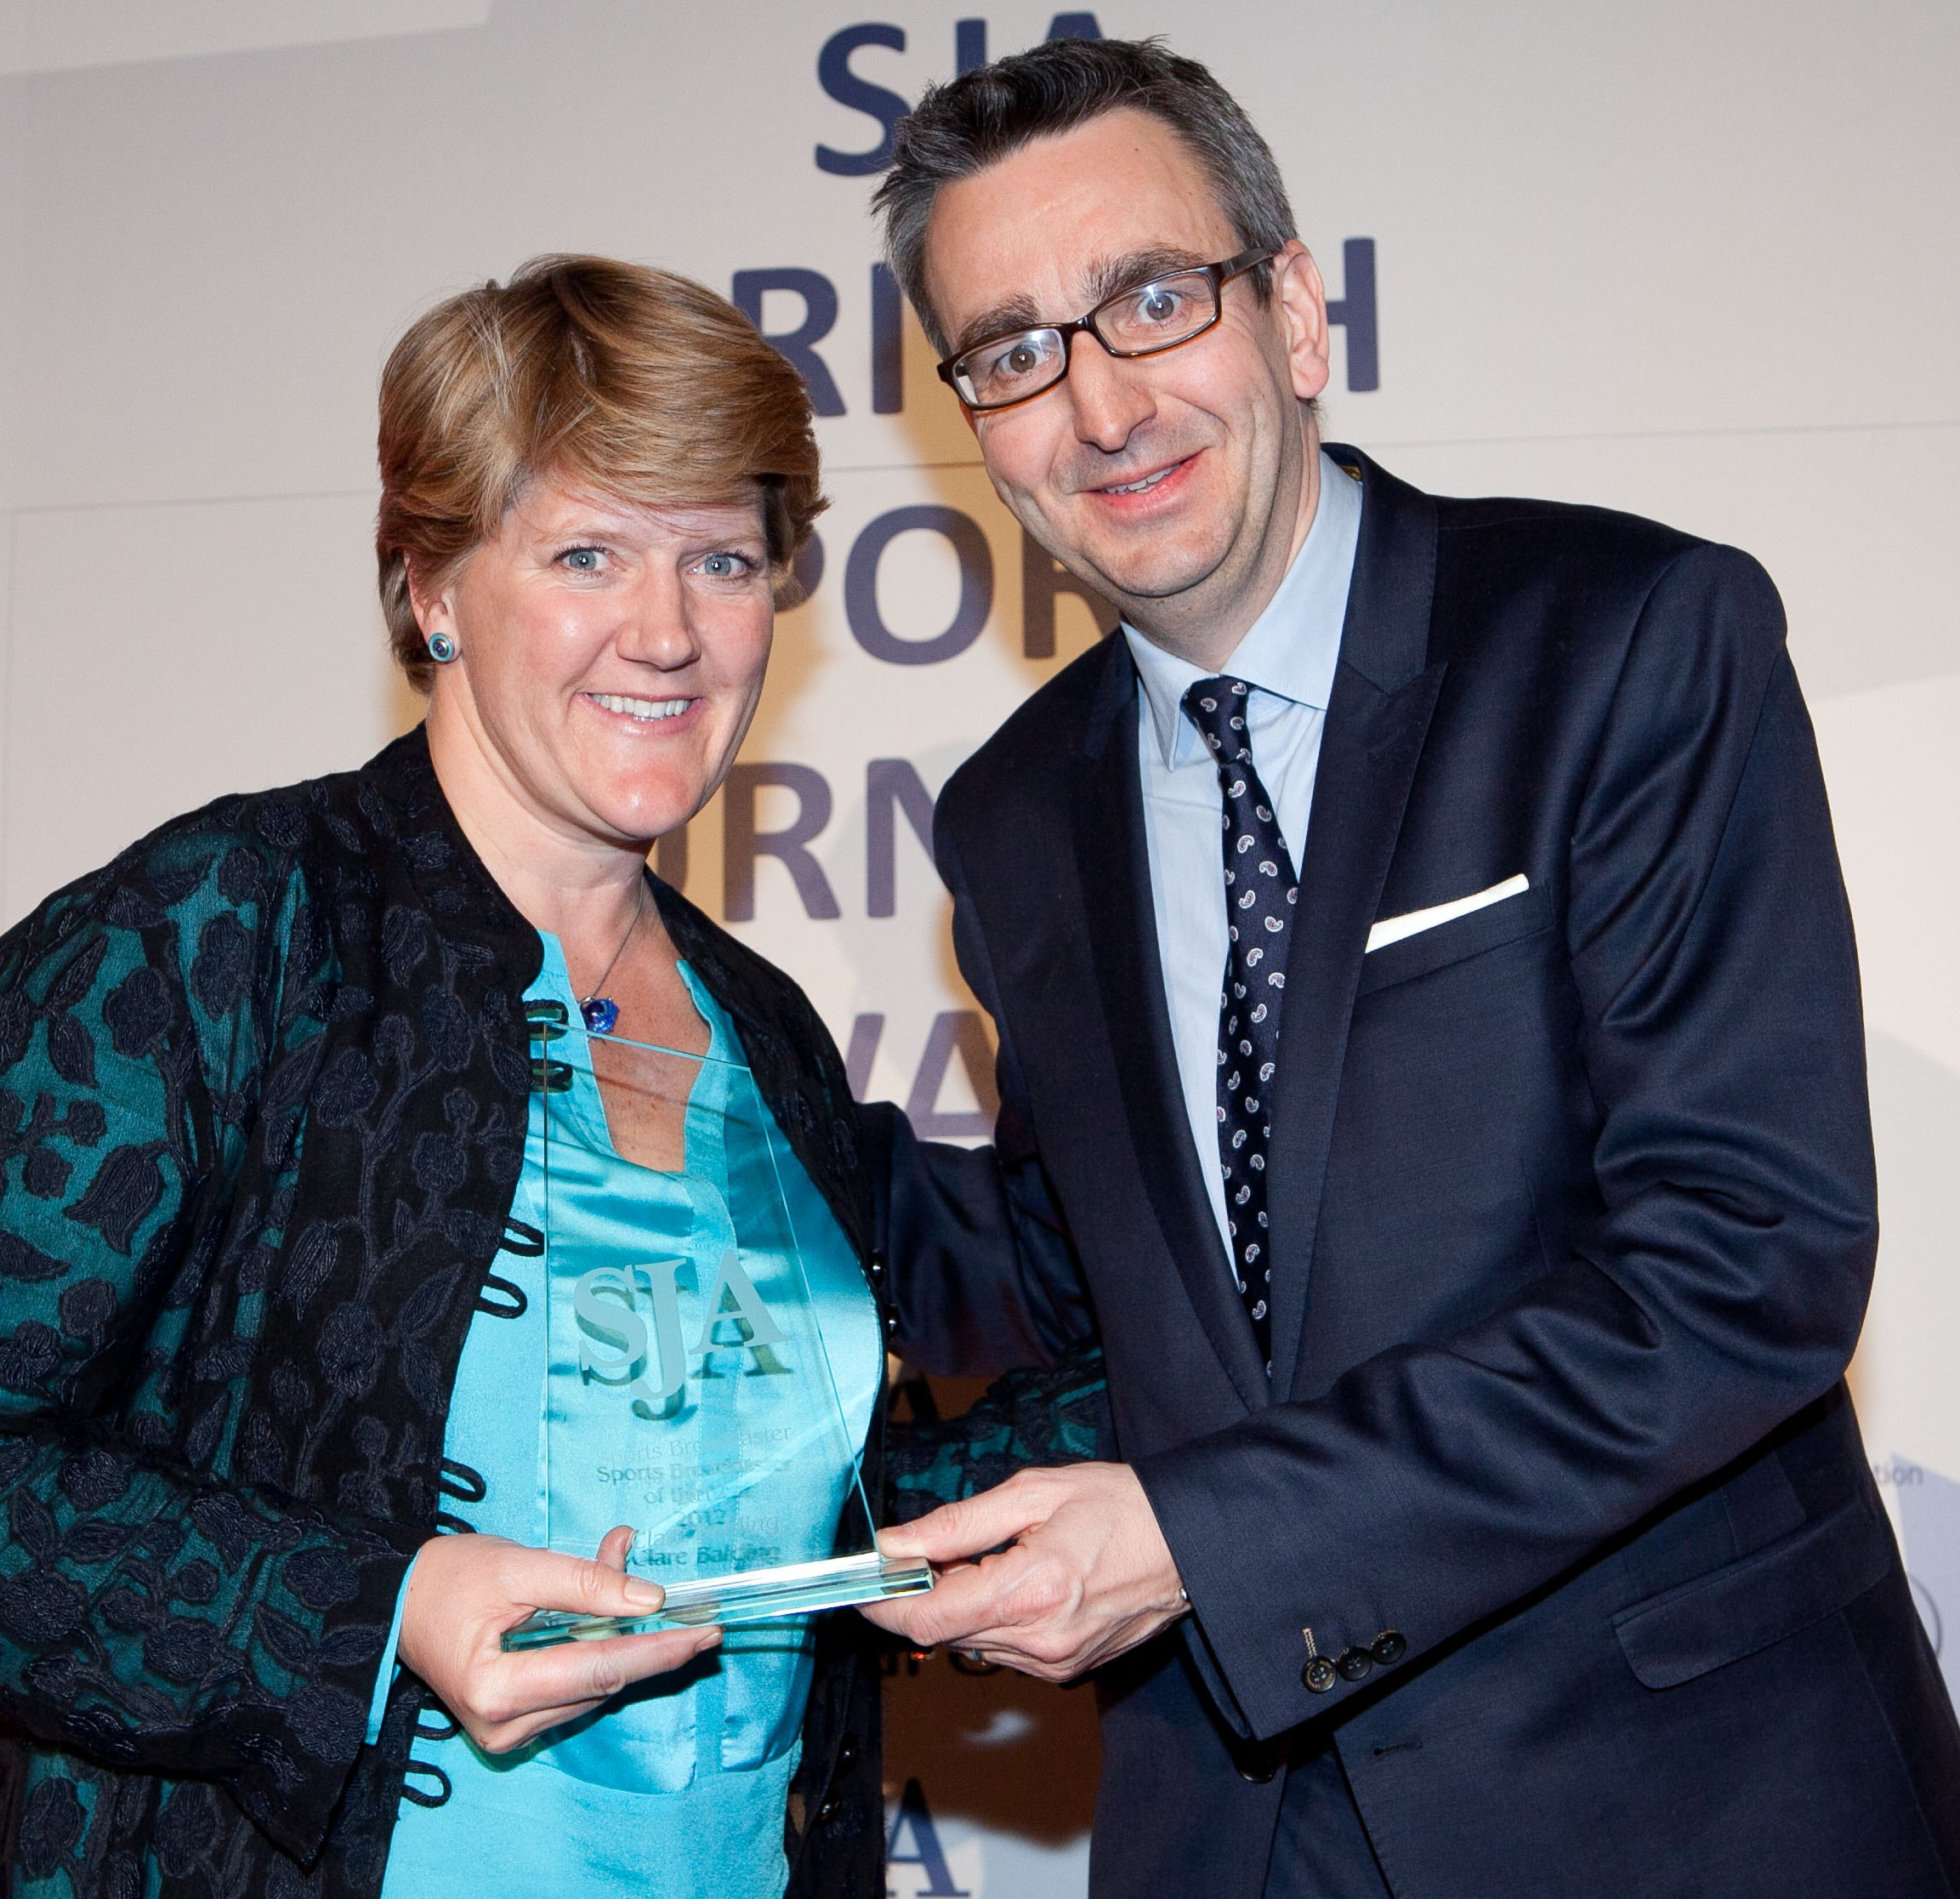 Clare Balding was the 2012 Sports Broadcaster of the Year at our Sports Journalism Awards, here presented with her trophy by the British Paralympic Association's Tim Hollingsworth